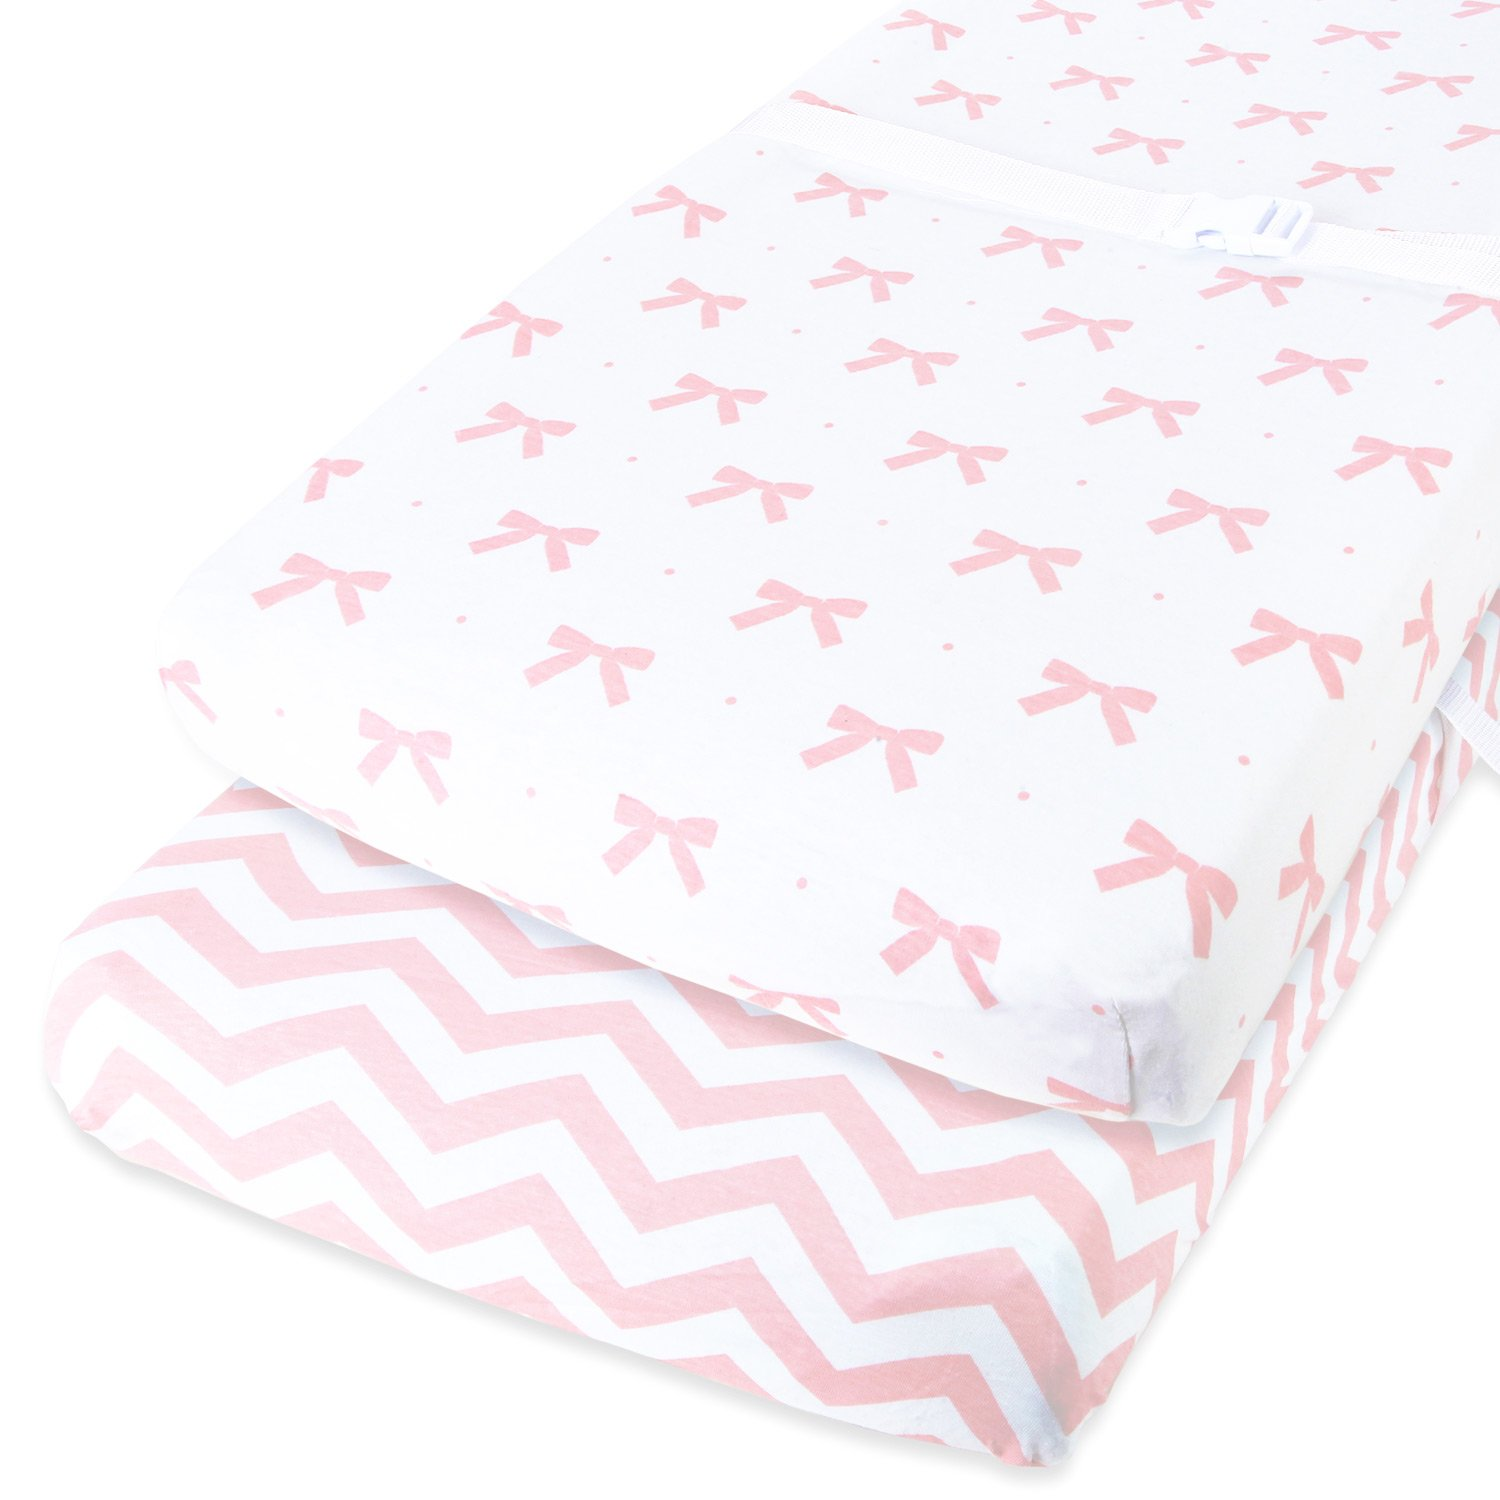 Cuddly Cubs Diaper Changing Table Pad Cover Set For Baby Girl | Soft & Breathable 100% Jersey Cotton | Adorable Unisex Patterns & Fitted Elastic Design | Cute Nursery & Cradle Bedding Sheets 2-Pack by Cuddly Cubs (Image #1)